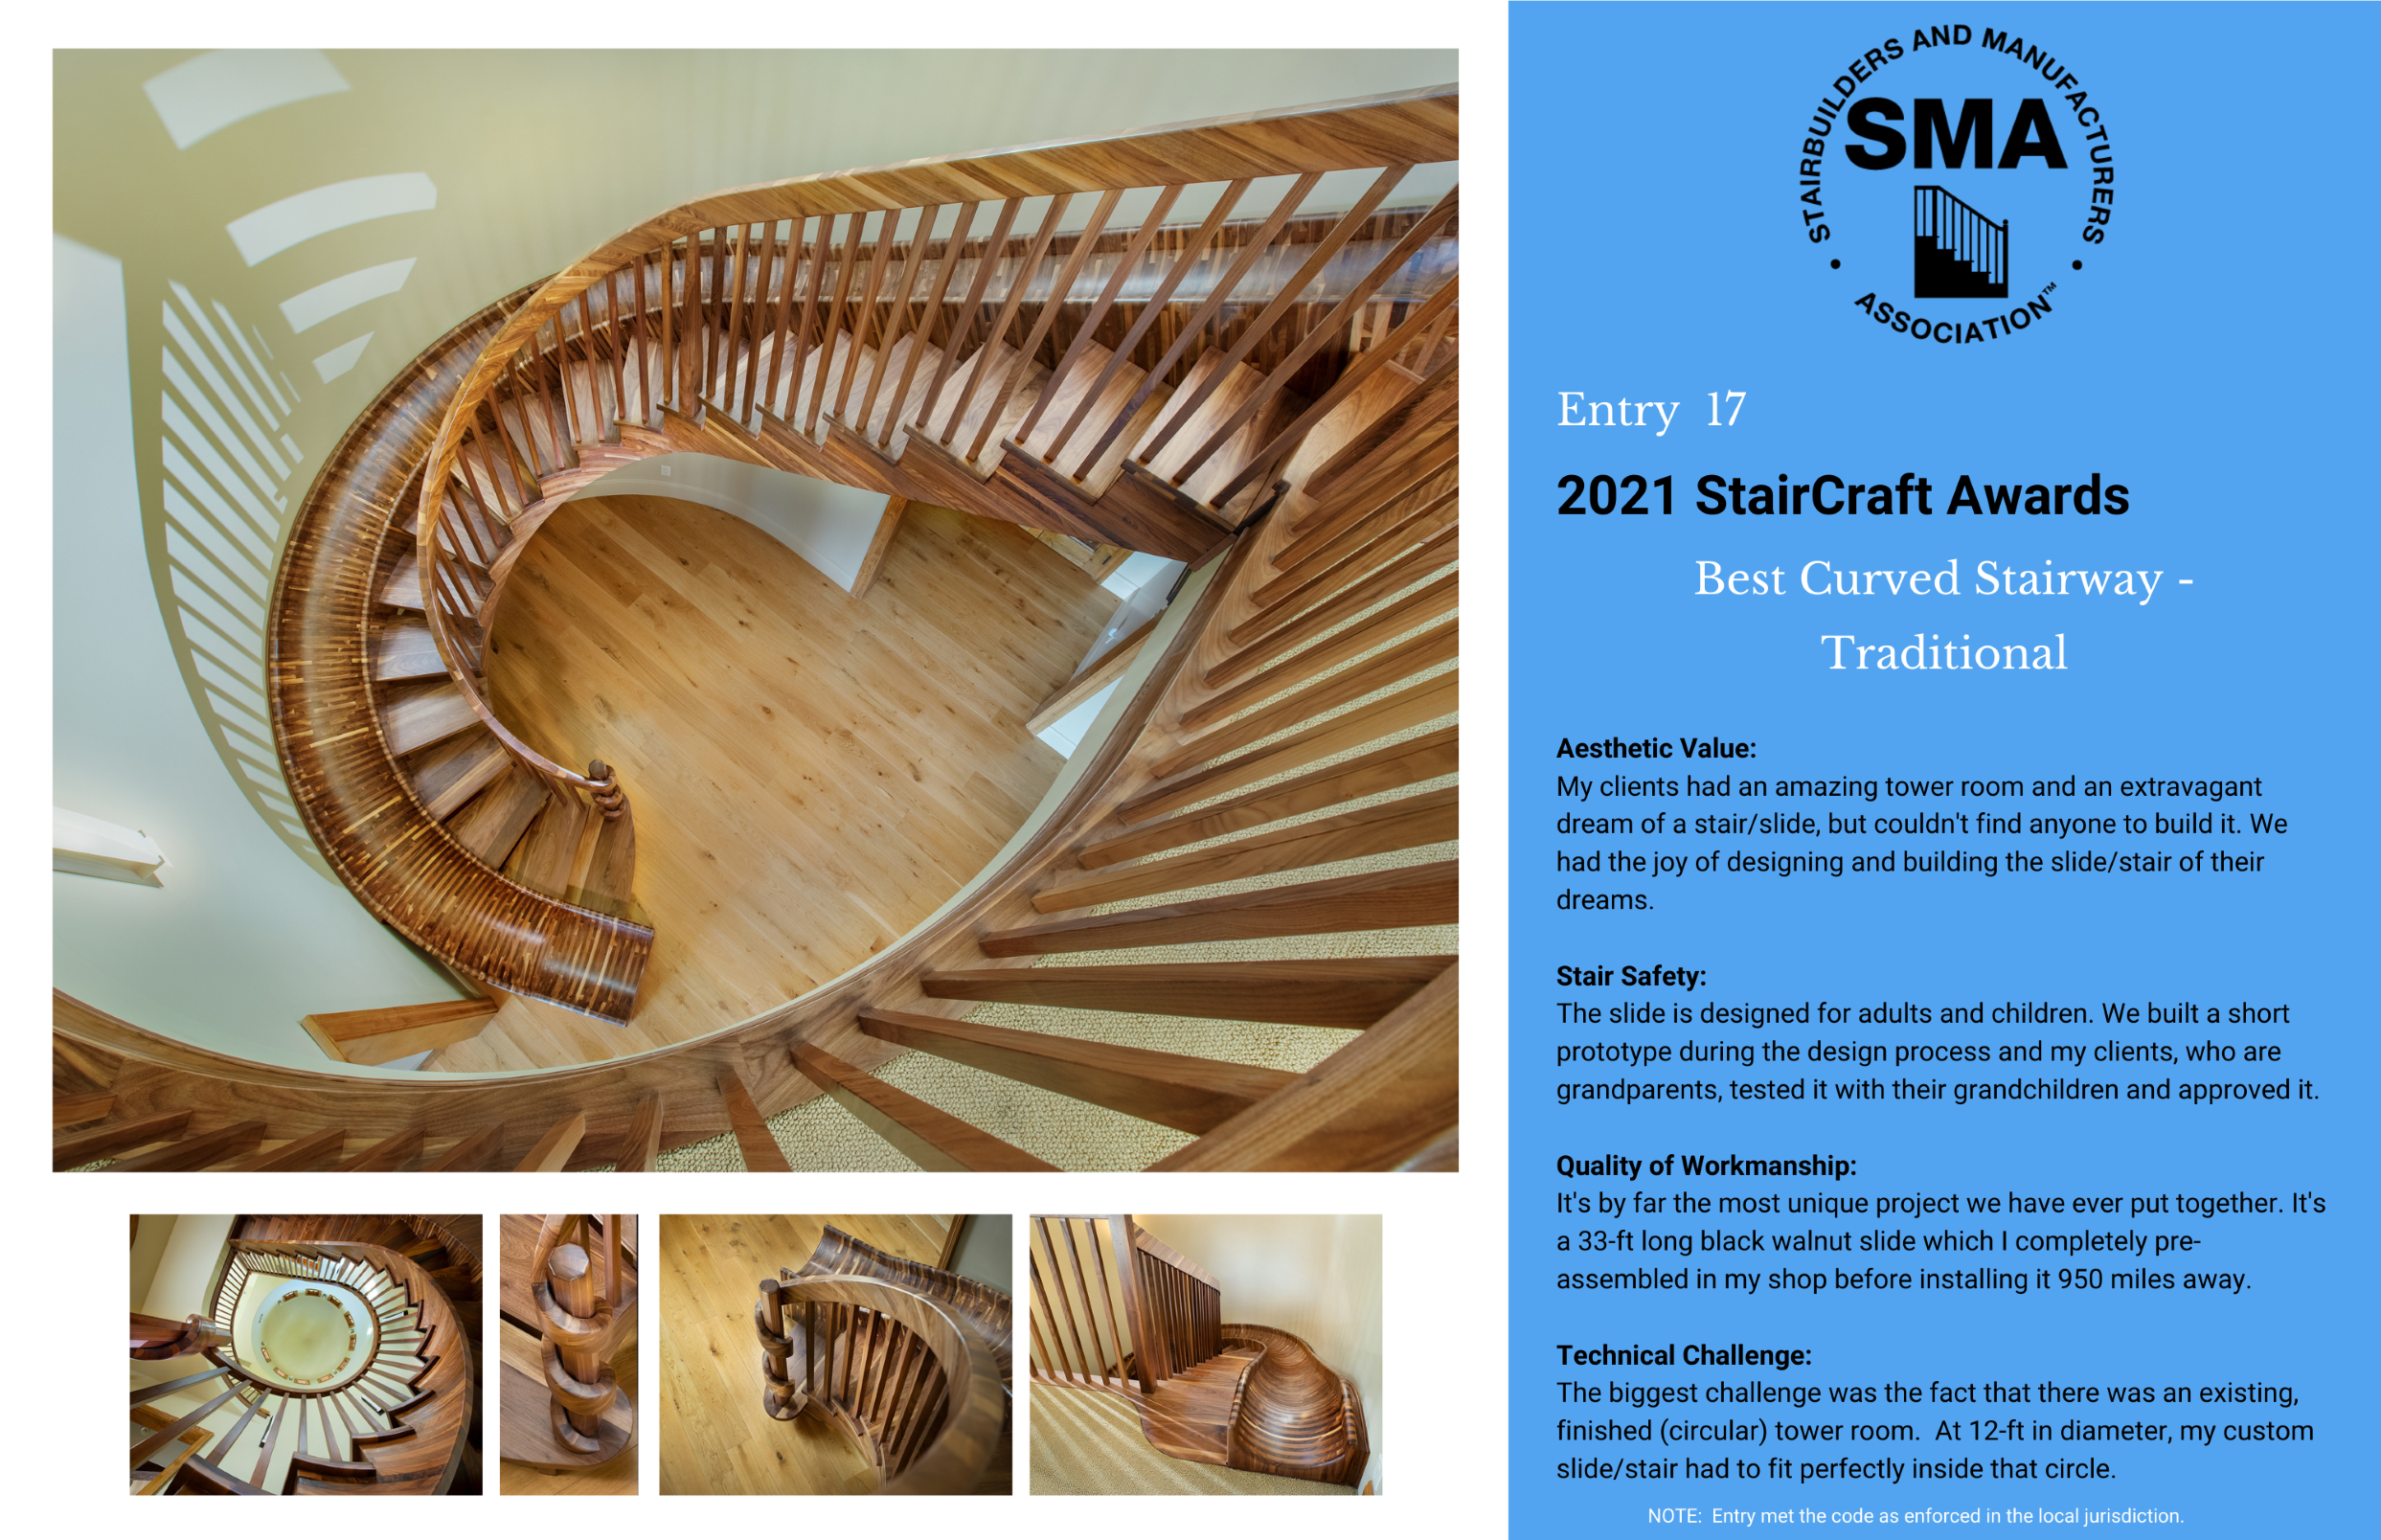 2021 StairCraft Awards Entry 17